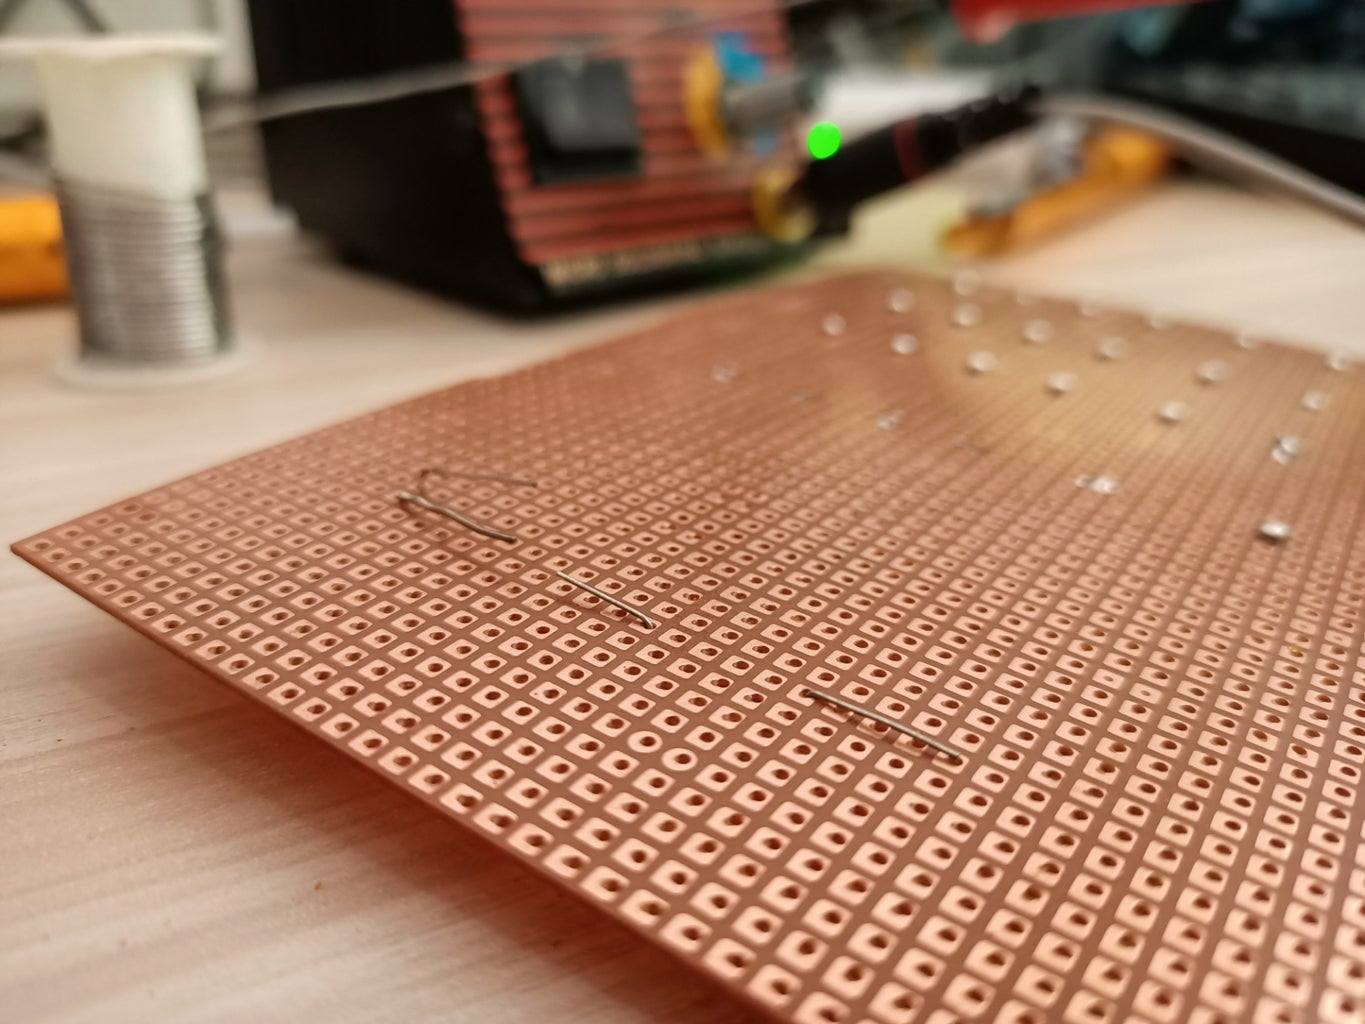 Mini Soldering Projects